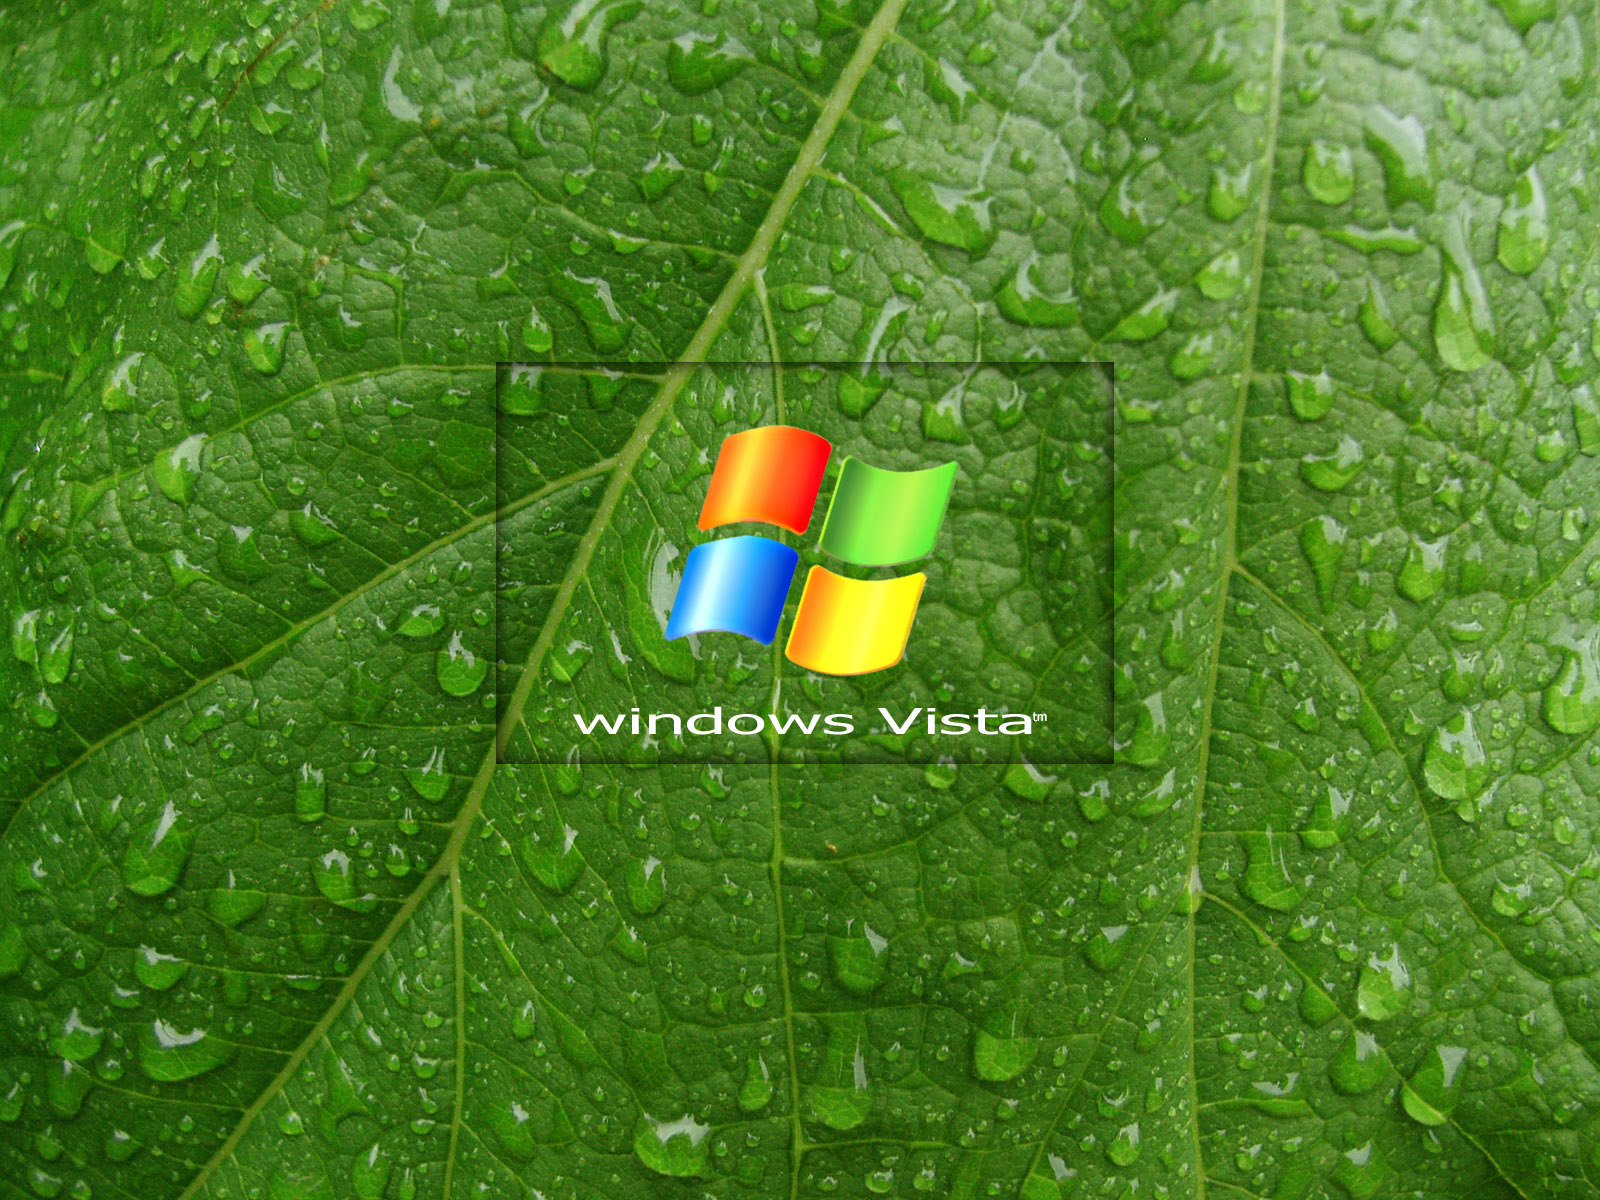 Green Leaf Vista001 Windows 7 Vista Xp Picks 壁紙 ファンポップ